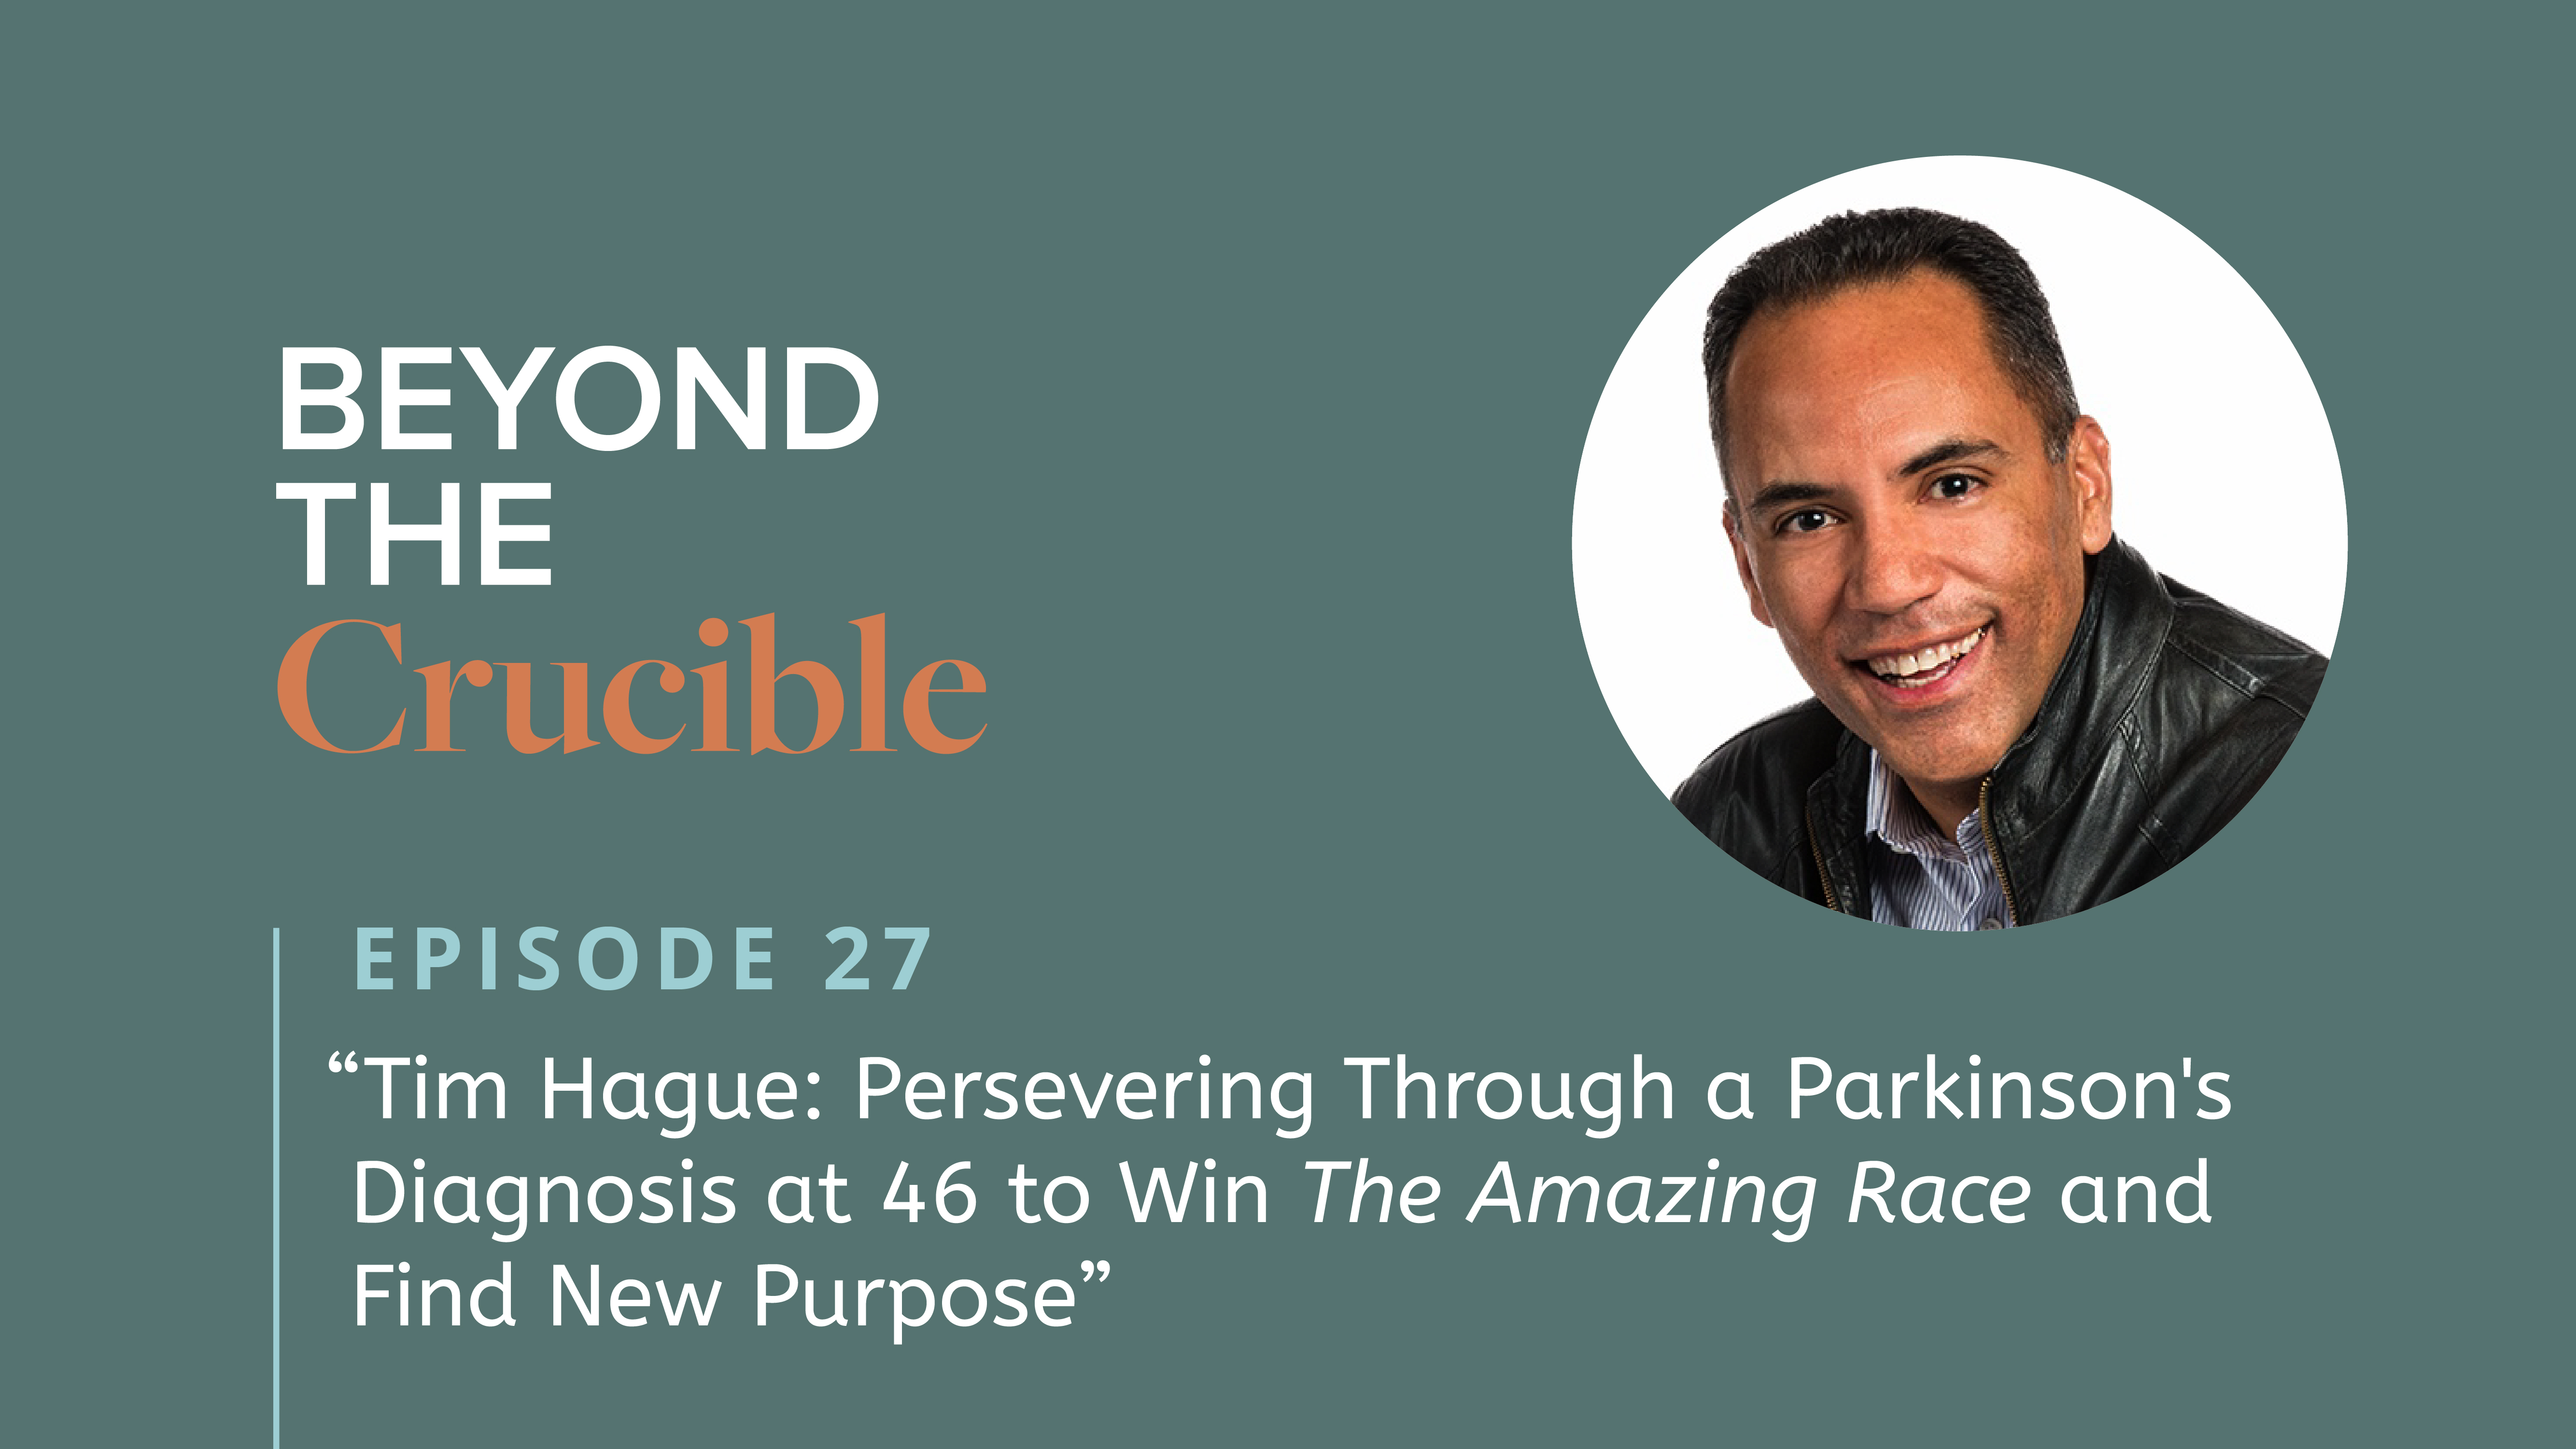 Tim Hague: Persevering Through a Parkinson's Diagnosis at 46 to Win The Amazing Race and Find New Purpose #27